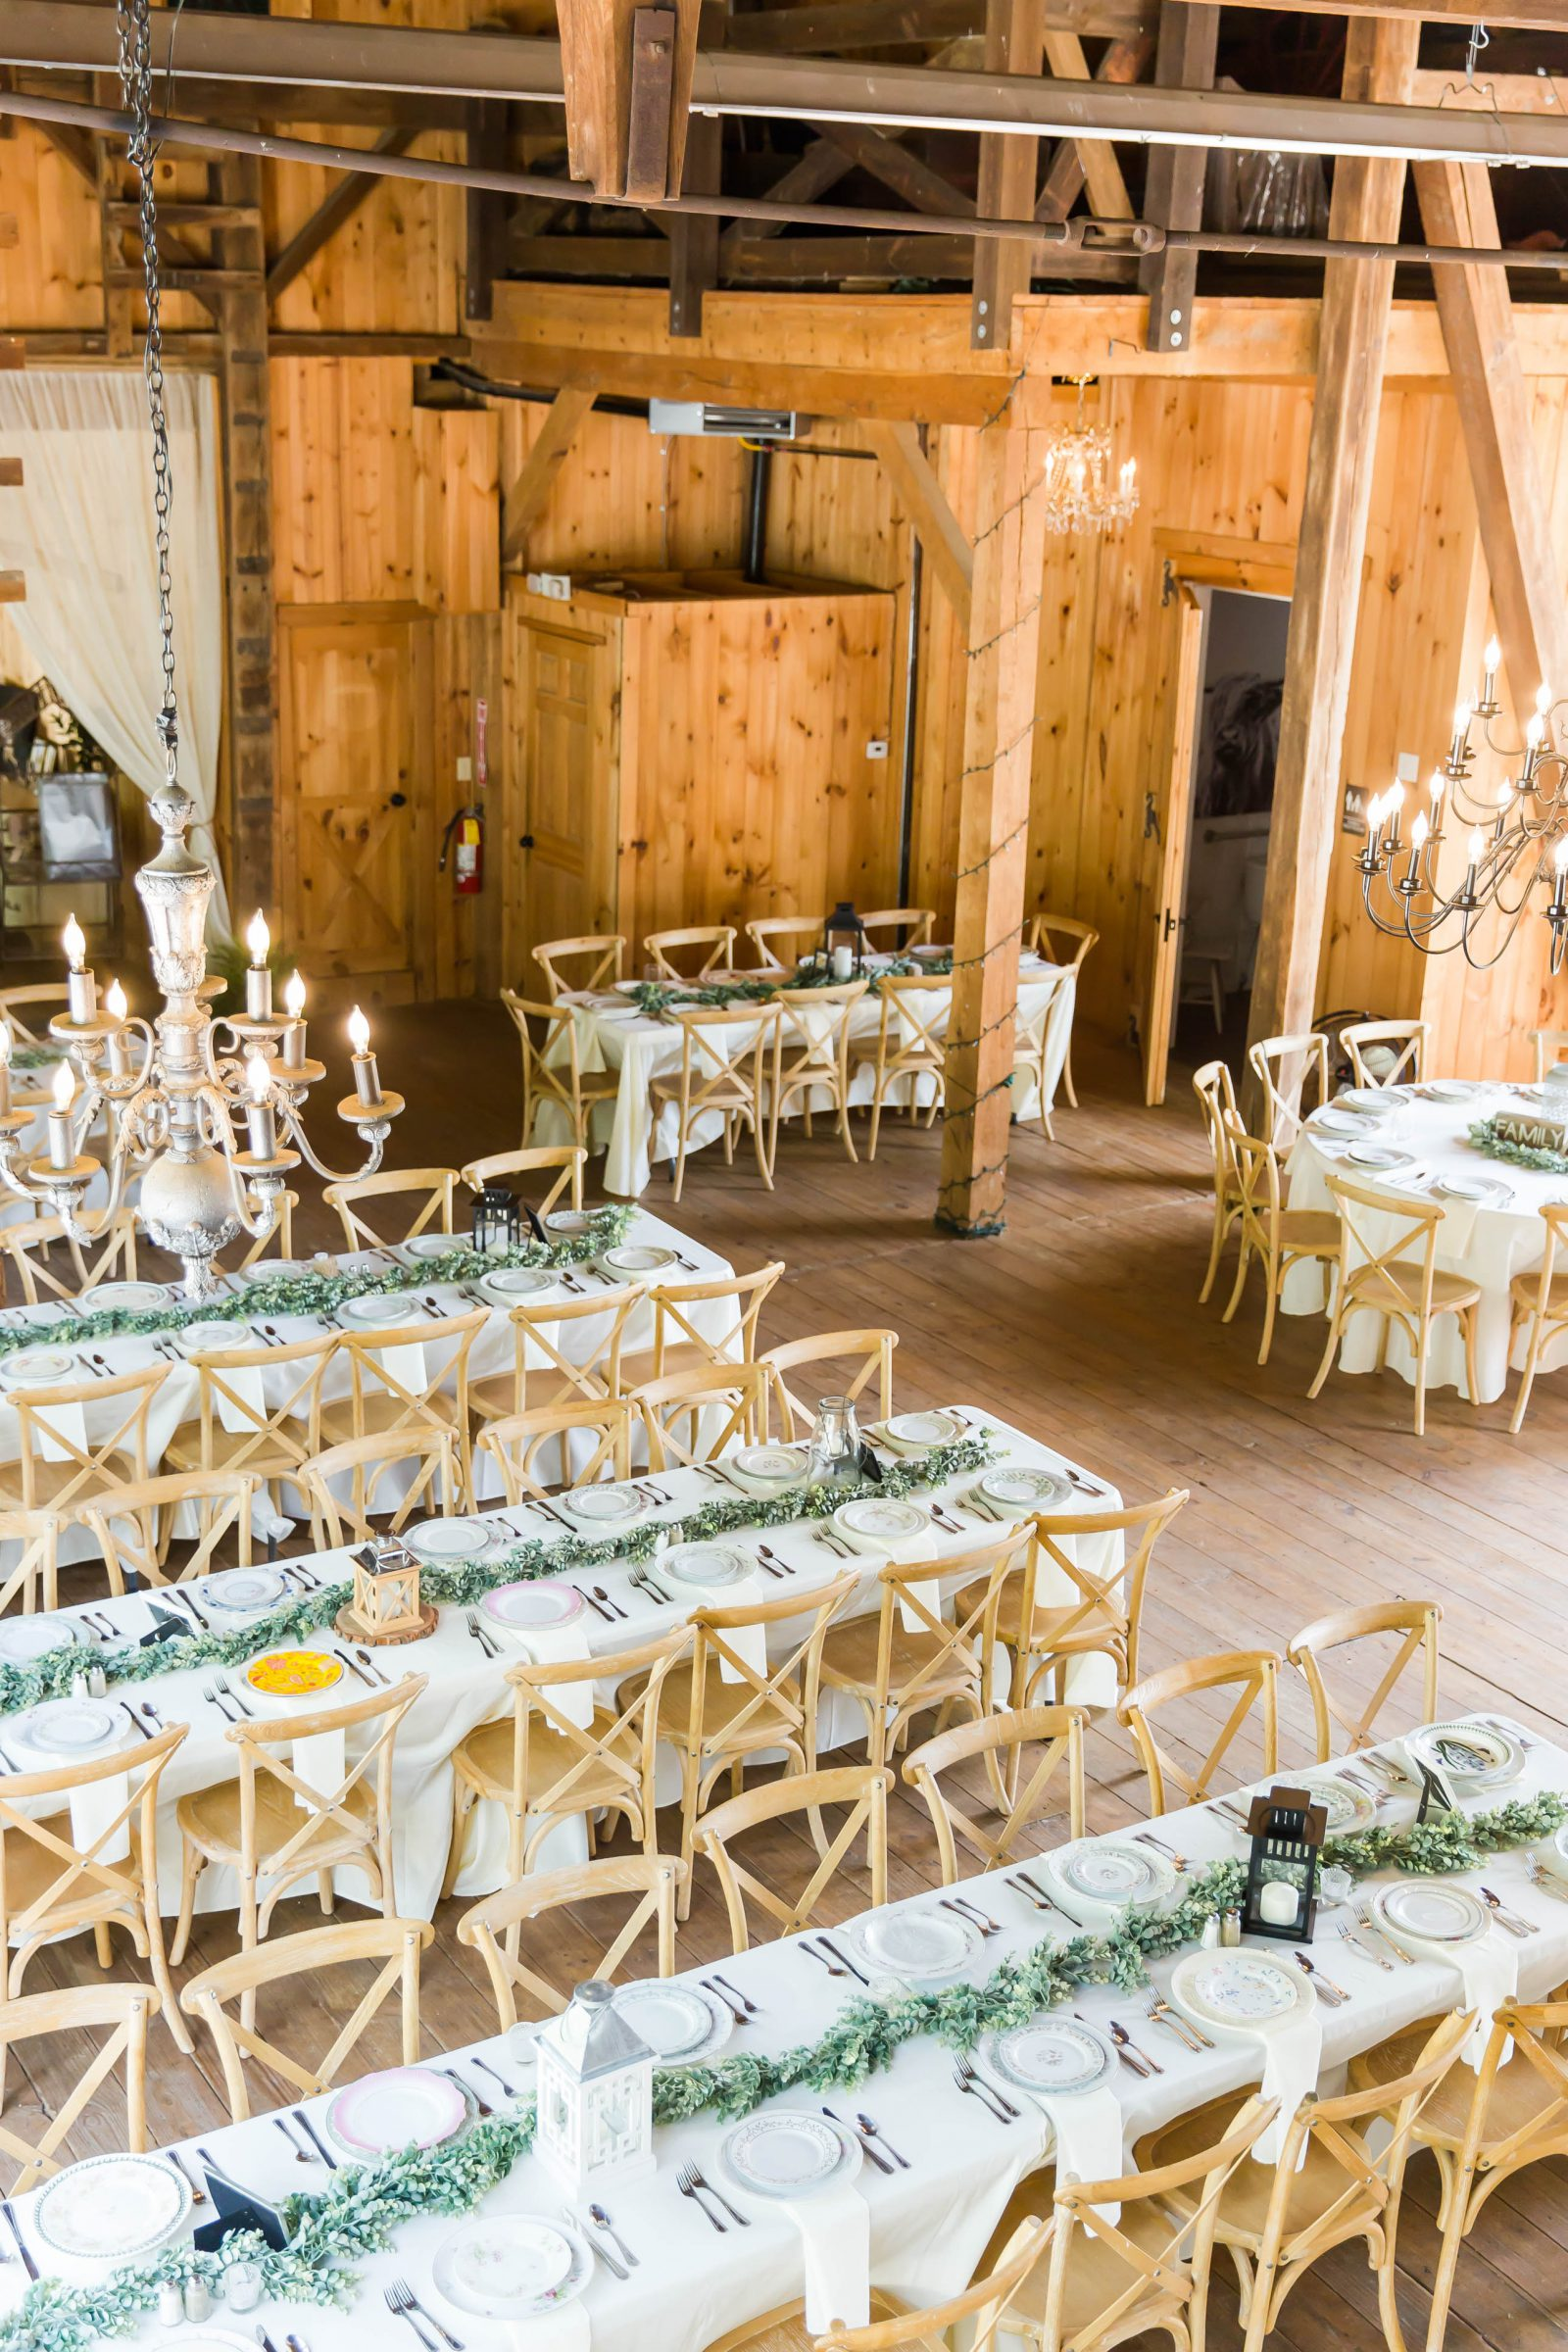 rivercrest-farm-summer-wedding-loren-jackson-photography-73